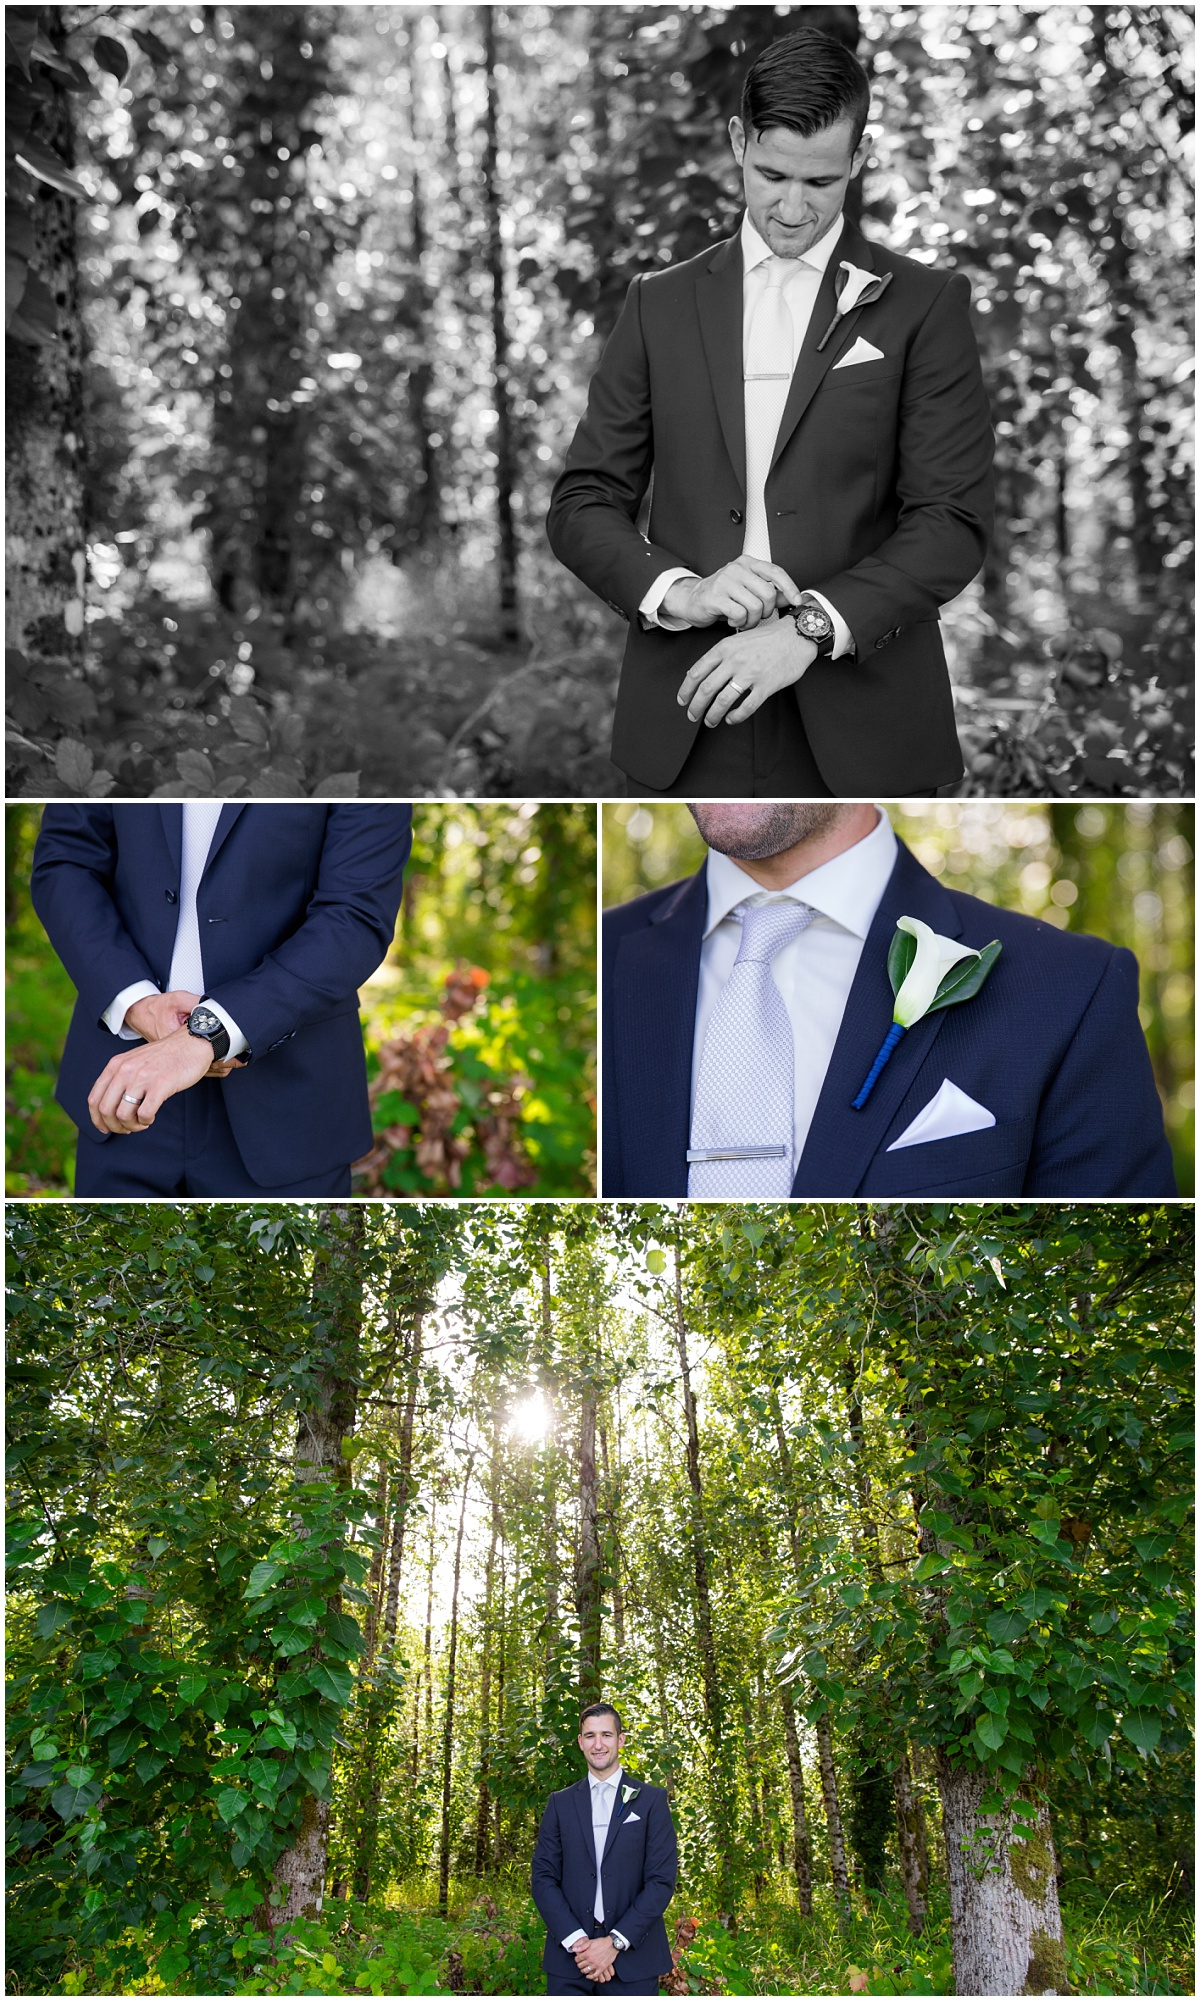 Amazing Day Photography - Redwoods Golf Course Wedding - Amanda and Dustin - Langley Wedding Photographer  (18).jpg